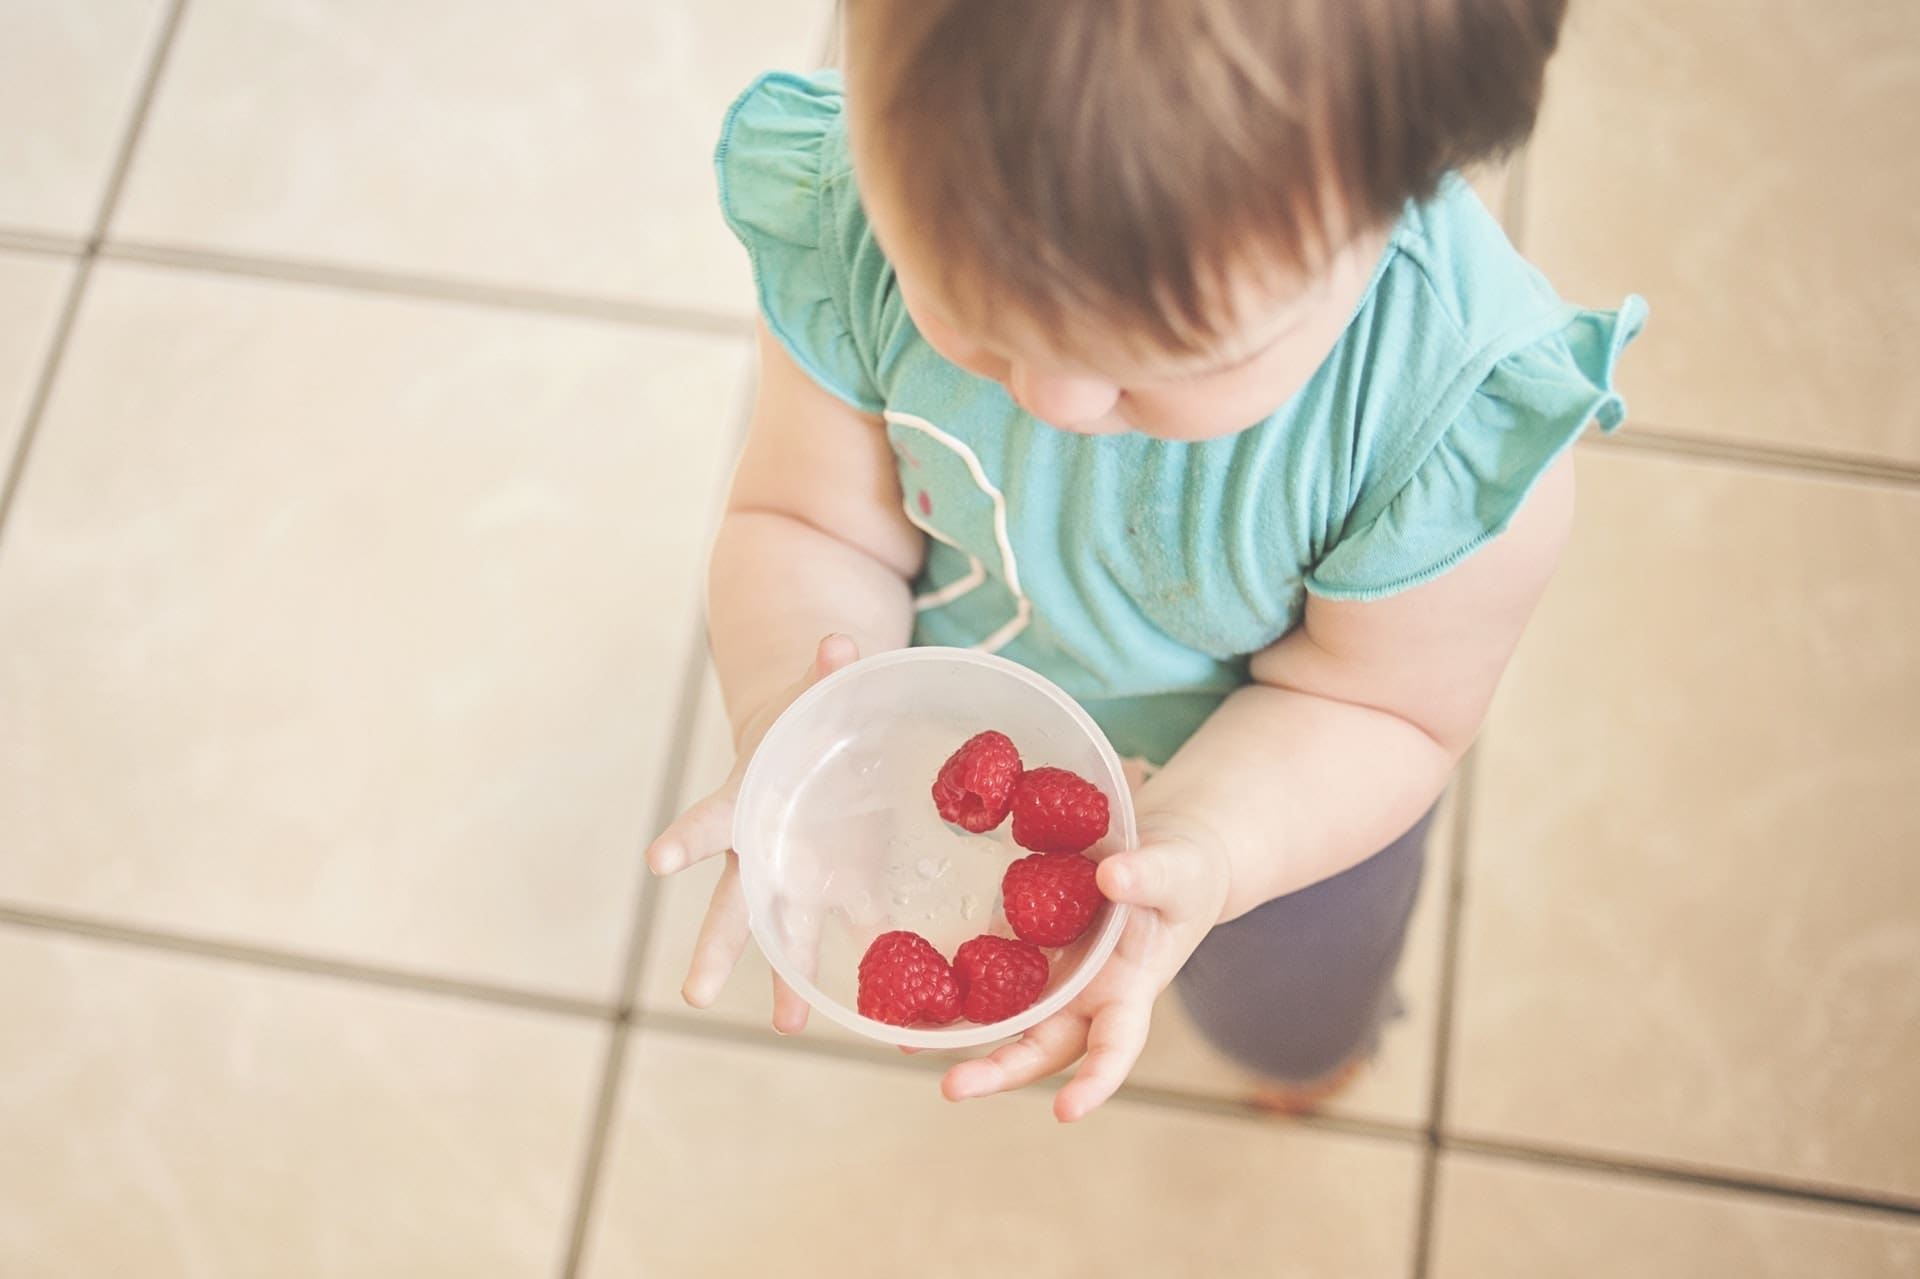 baby holding bowl of raspberries